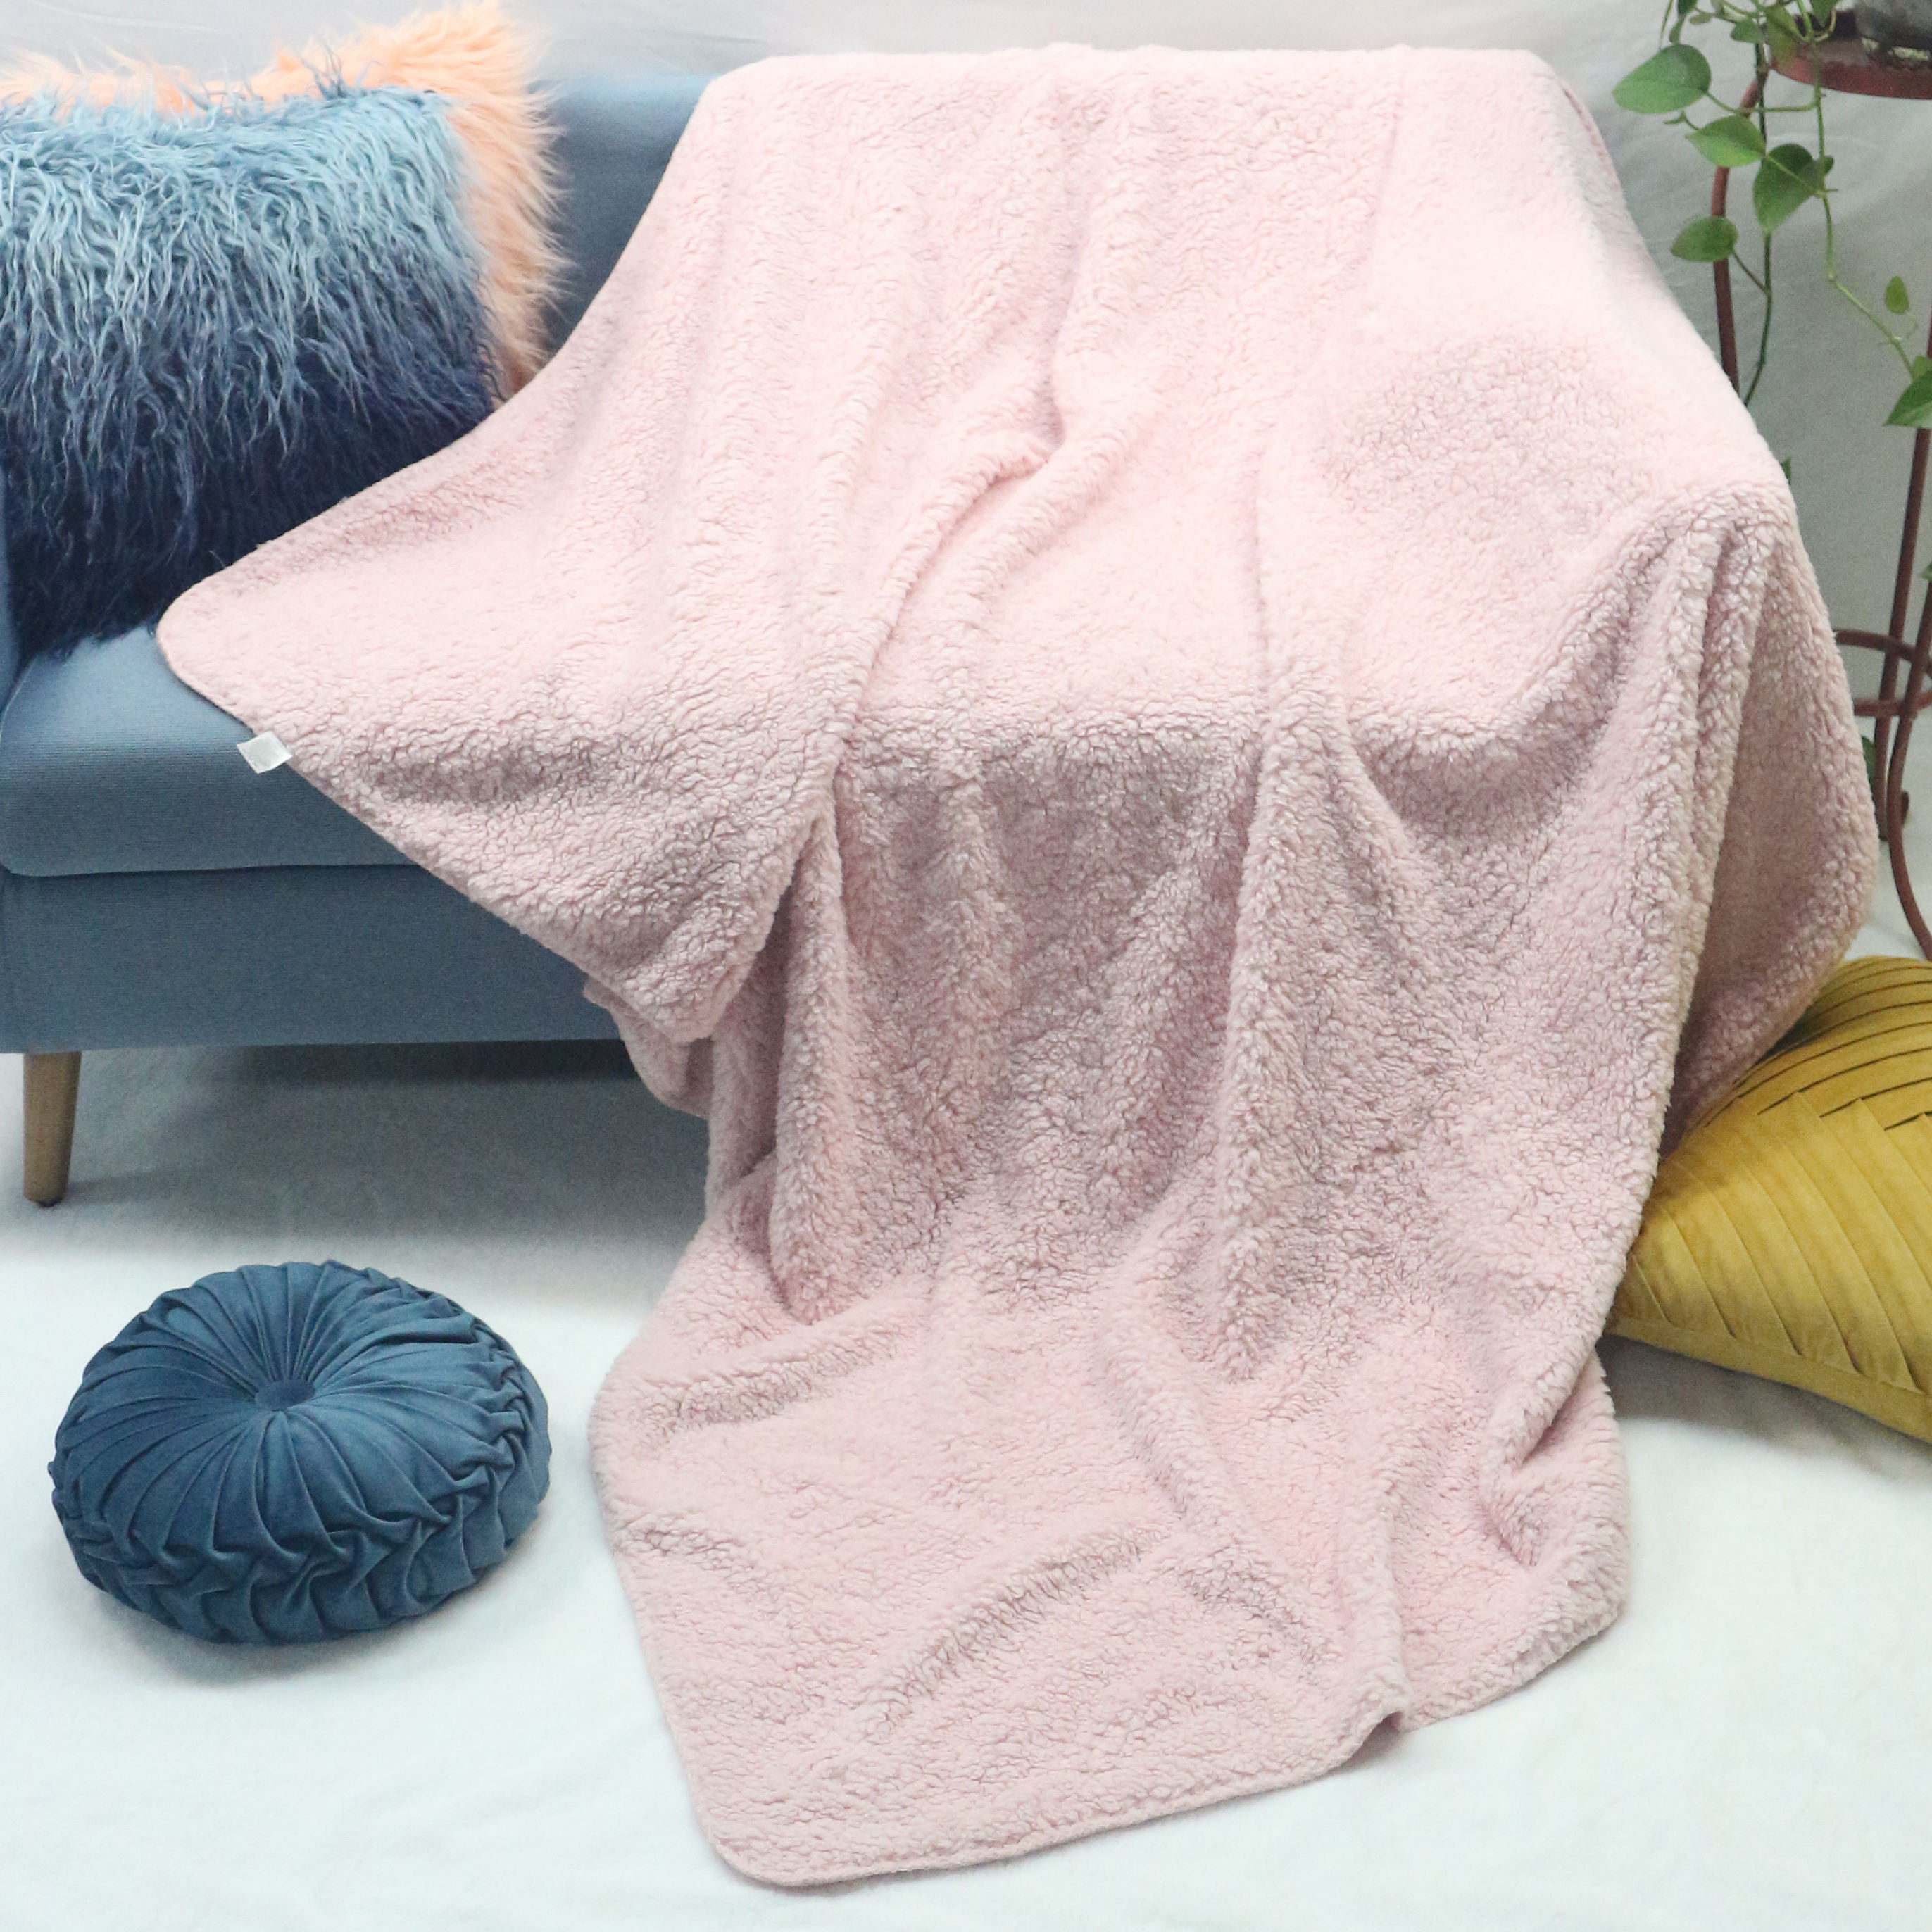 Made in china native blankets custom logo king size bed mesh polyester outdoor sherpa throw blanket fleece